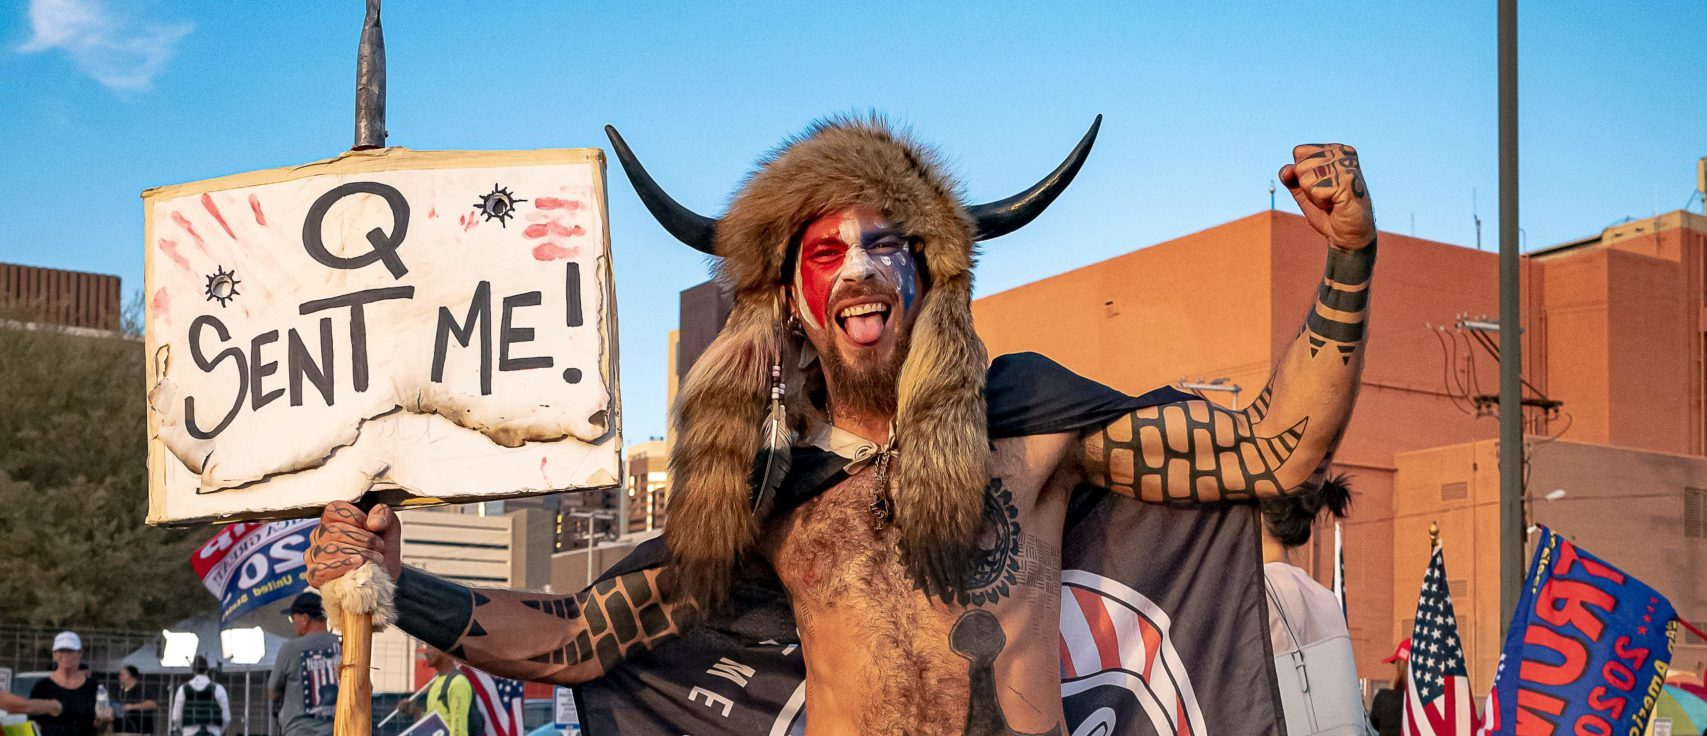 Jake Angeli, 33, aka Yellowstone Wolf, from Phoenix, holds a QAnon sign, as he presents himself as a shamanist and consultant for the Trump supporters gathered in front of the Maricopa County Election Department where ballots are counted after the US presidential election in Phoenix, Arizona, on November 5, 2020. - President Donald Trump erupted on November 5 in a tirade of unsubstantiated claims that he has been cheated out of winning the US election as vote counting across battleground states showed Democrat Joe Biden steadily closing in on victory. (Photo by OLIVIER TOURON / AFP) (Photo by OLIVIER TOURON/AFP via Getty Images)